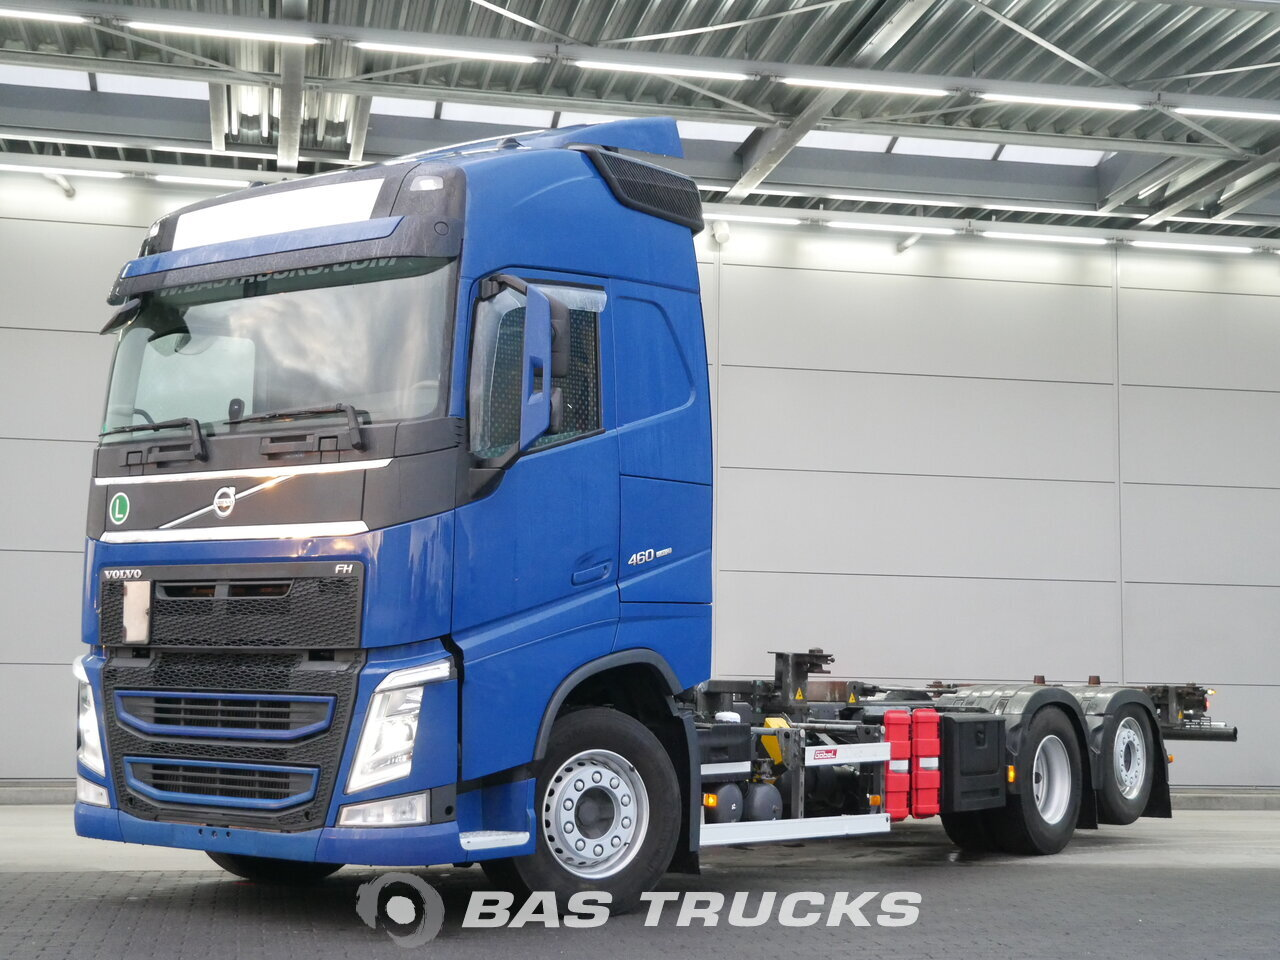 volvo fh 460 motrice euro 6 45600 bas trucks. Black Bedroom Furniture Sets. Home Design Ideas